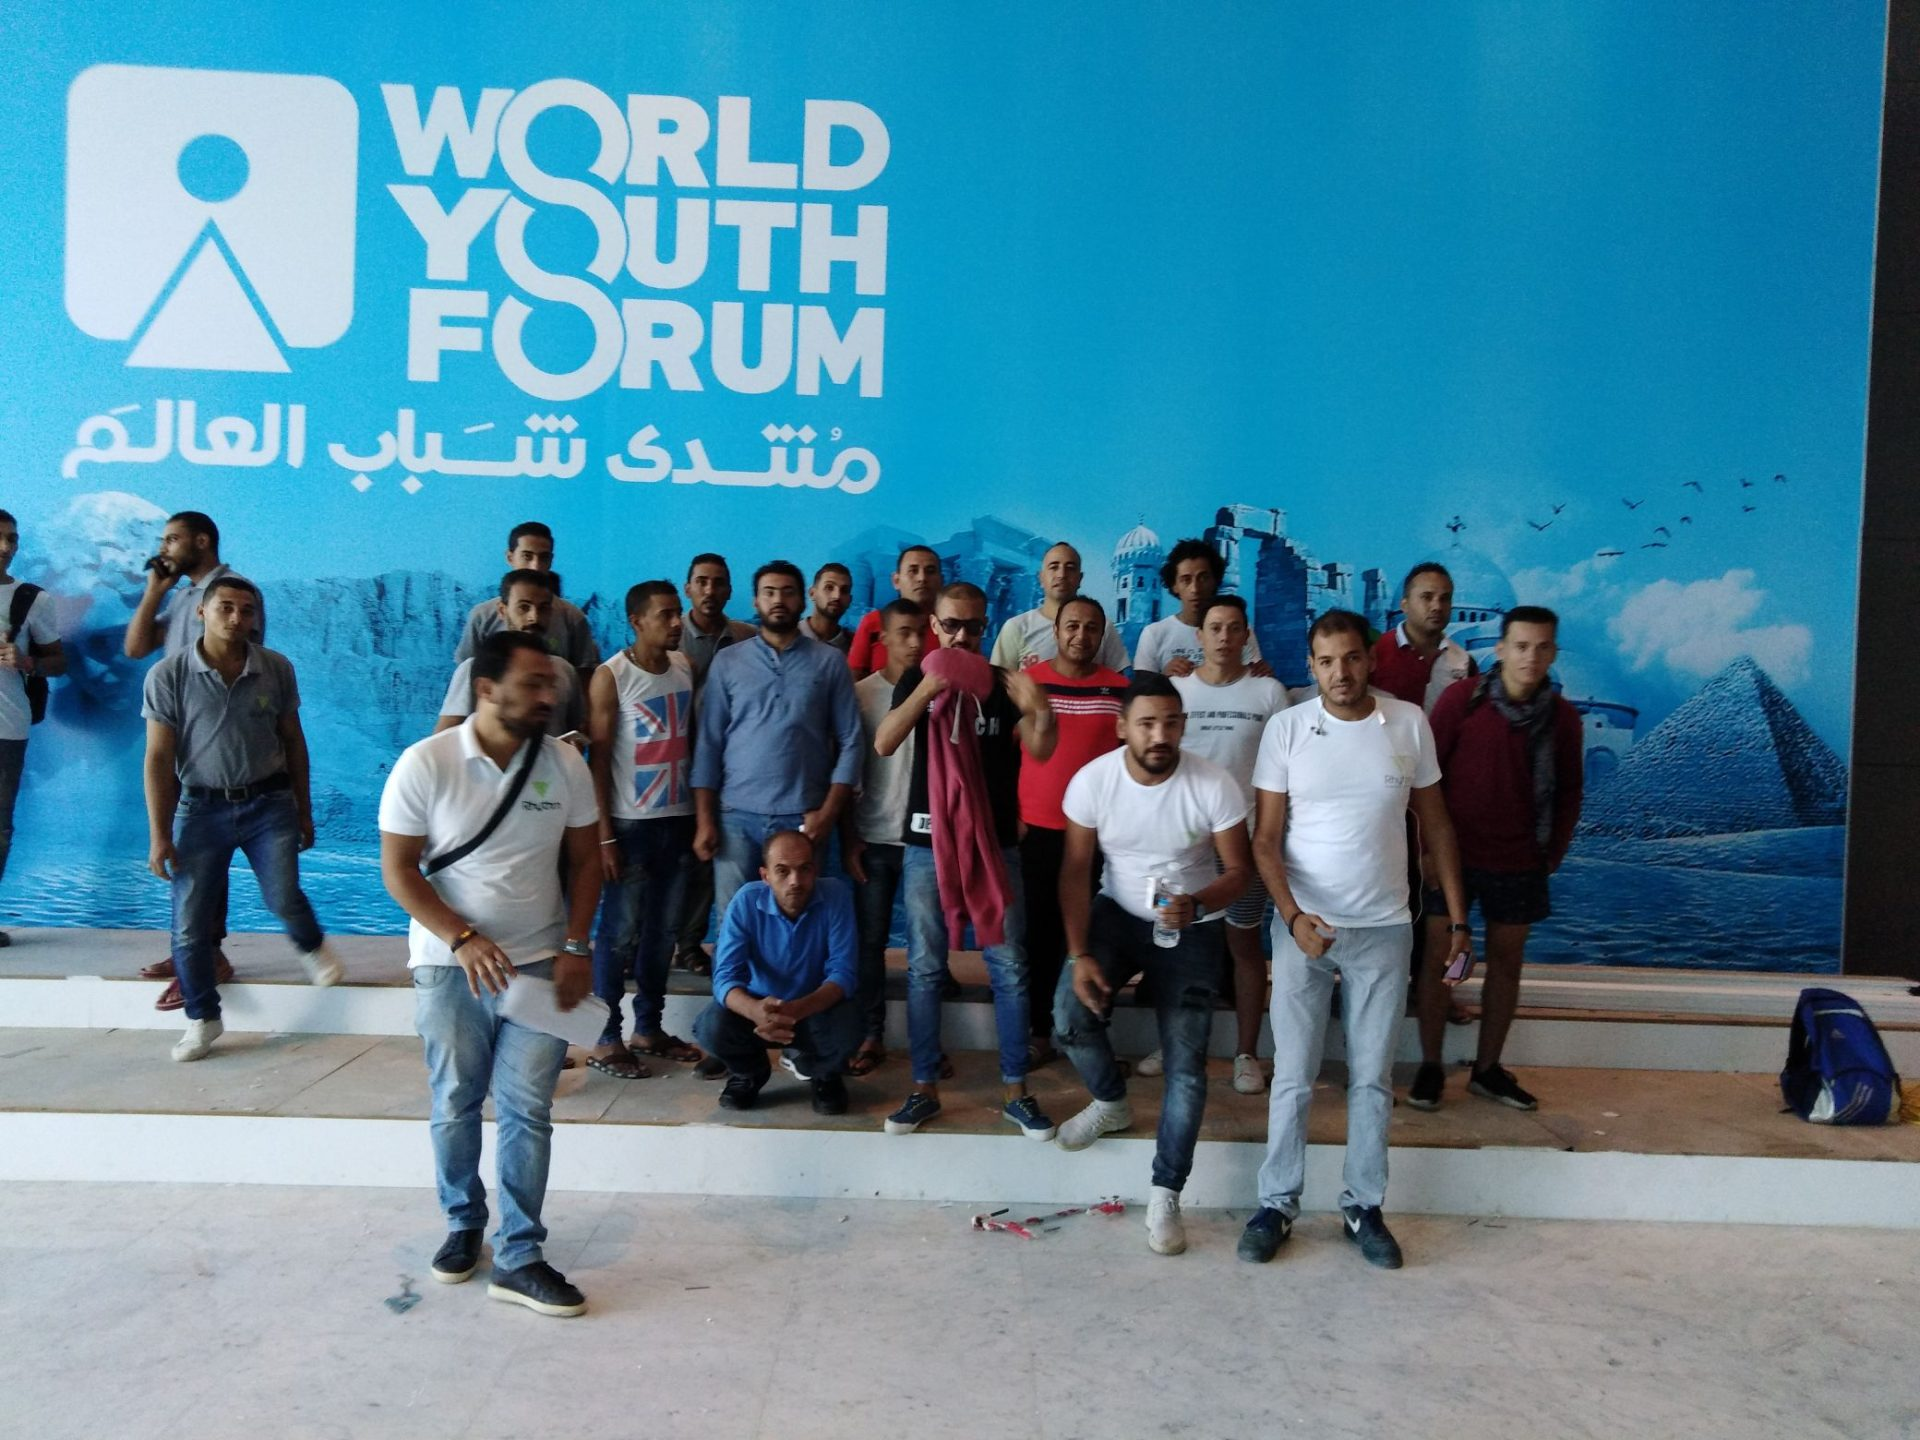 World Youth Forum 17